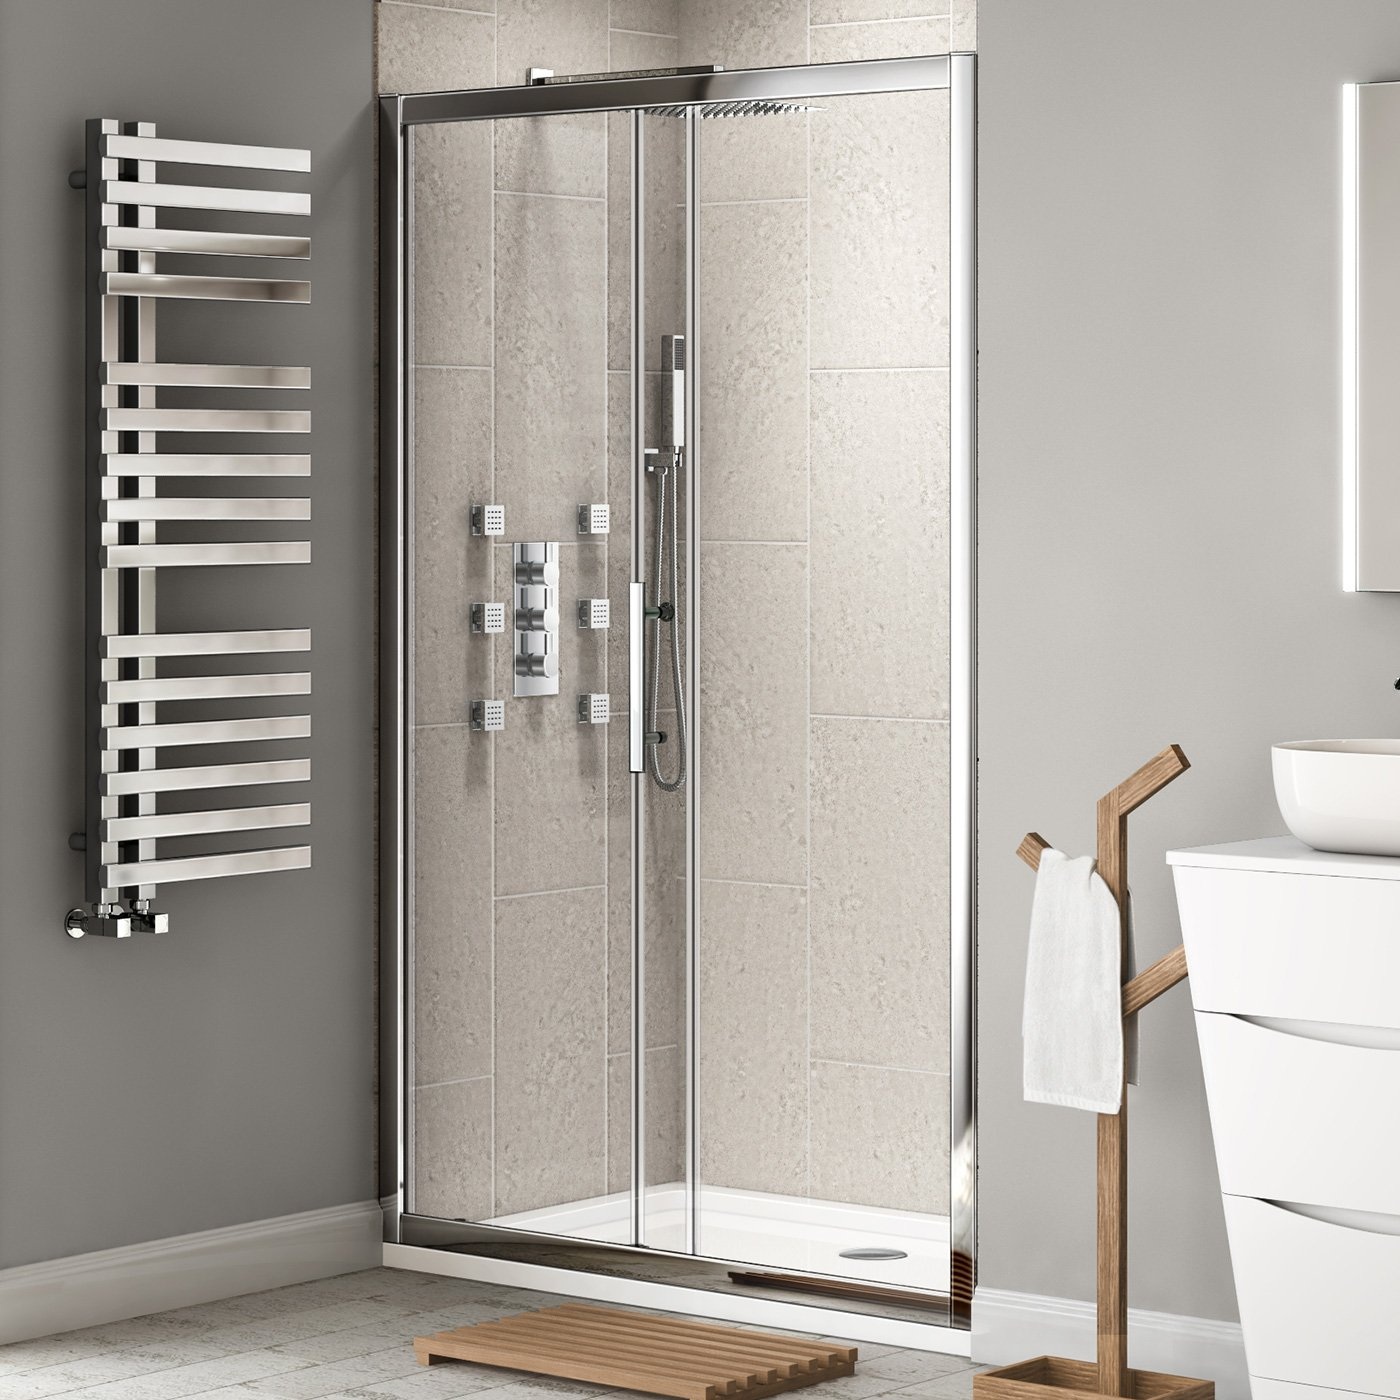 iBathUK 1200 mm Premium Sliding 8mm Thick Easy Clean Glass Shower Enclosure Cubicle Door